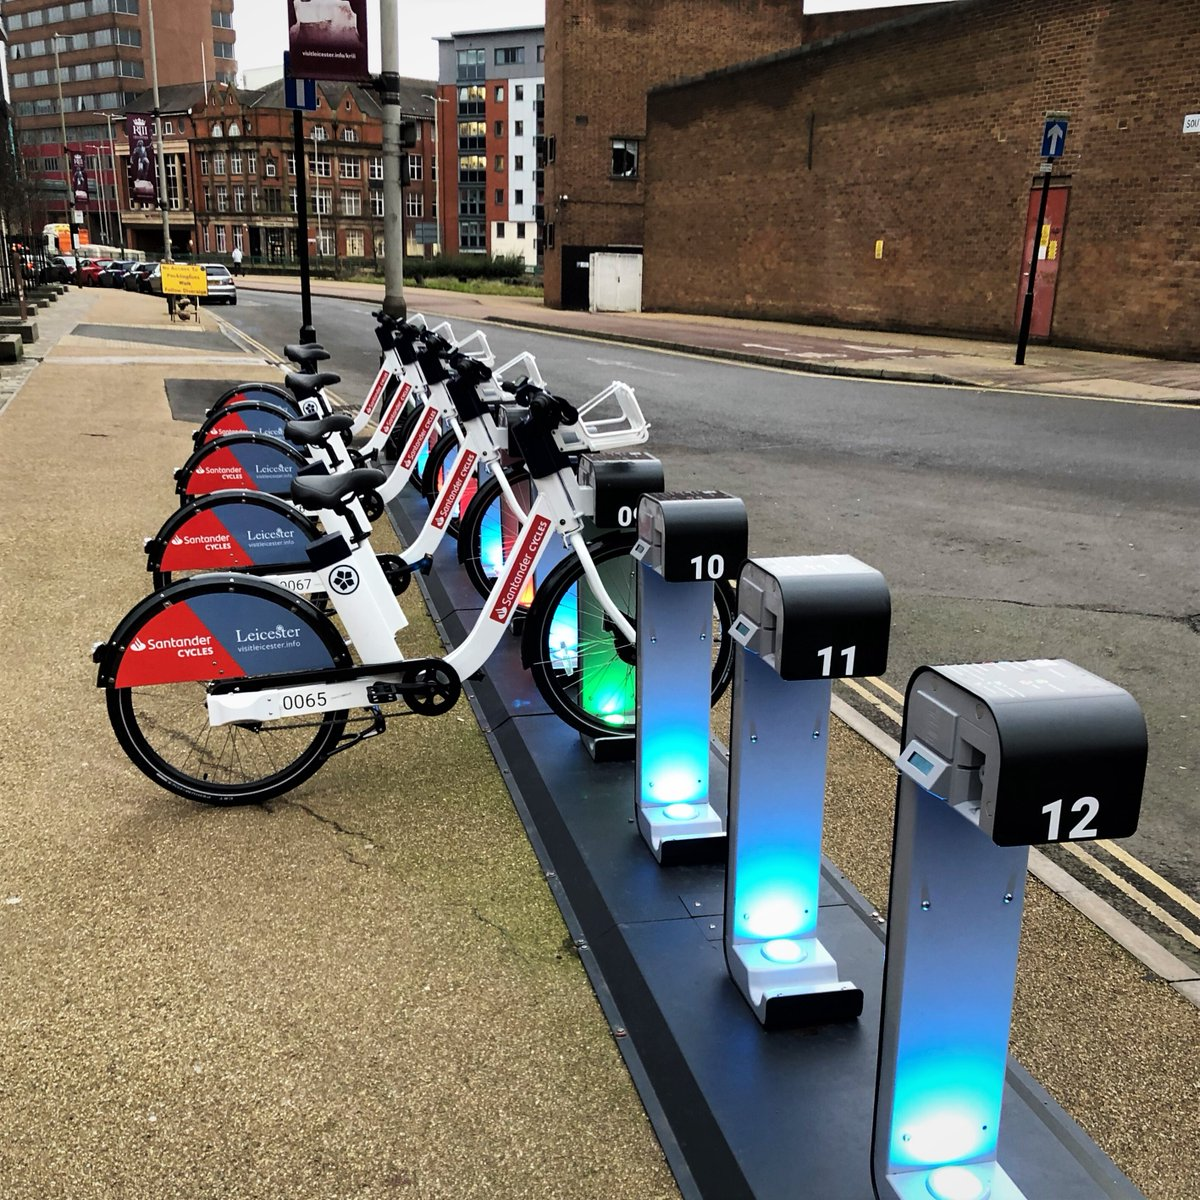 We have started a pilot testing phase w/ a small group of key workers making essential journeys across #Leicester. Excited to welcome everyone soon! 🚲 Find out more & subscribe @ 🌐  @Leicester_News @RideLeicester @ActiveLeicester @CHYMLeics  @santanderuk